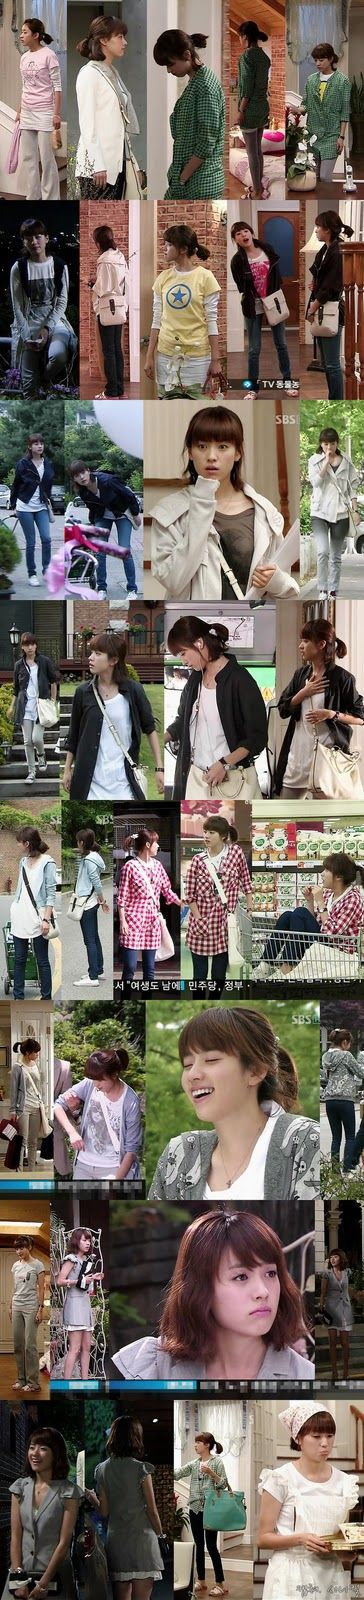 Han Hyo Joo's outfits from Brilliant Legacy one of my fav style in #korean drama